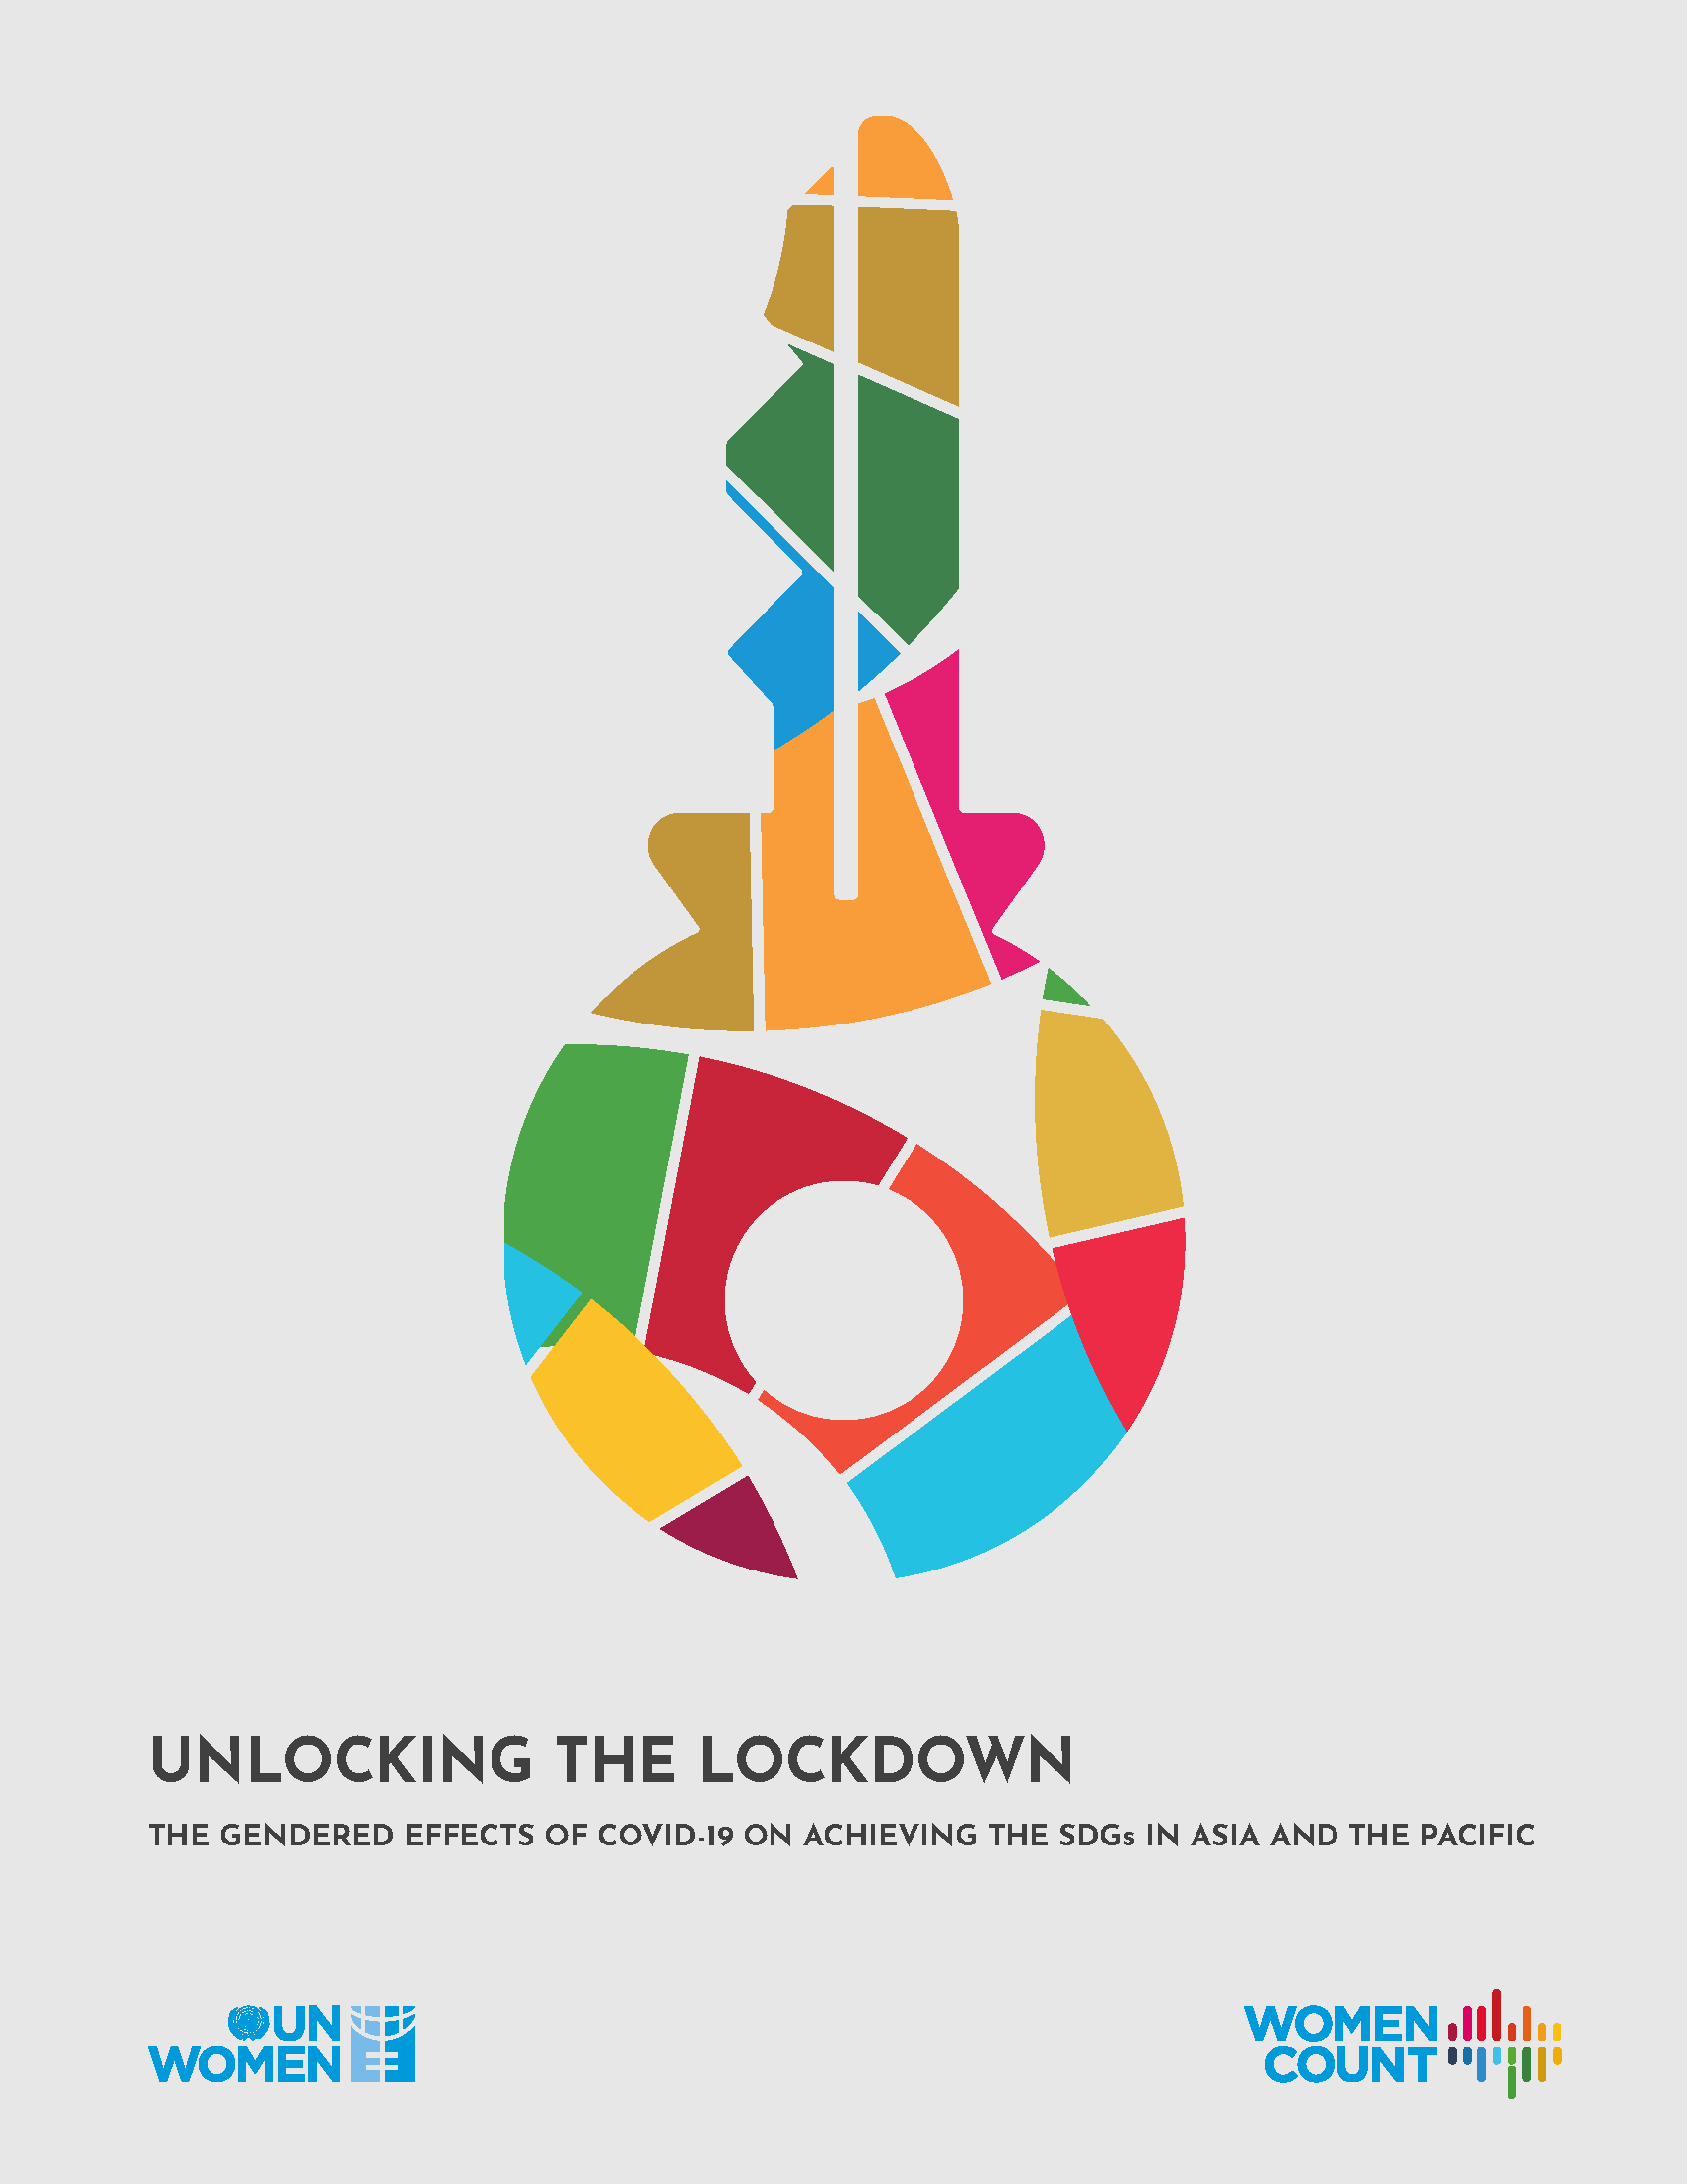 Unlocking the lockdown: The gendered effects of COVID-19 on achieving the SDGS in Asia and the Pacific